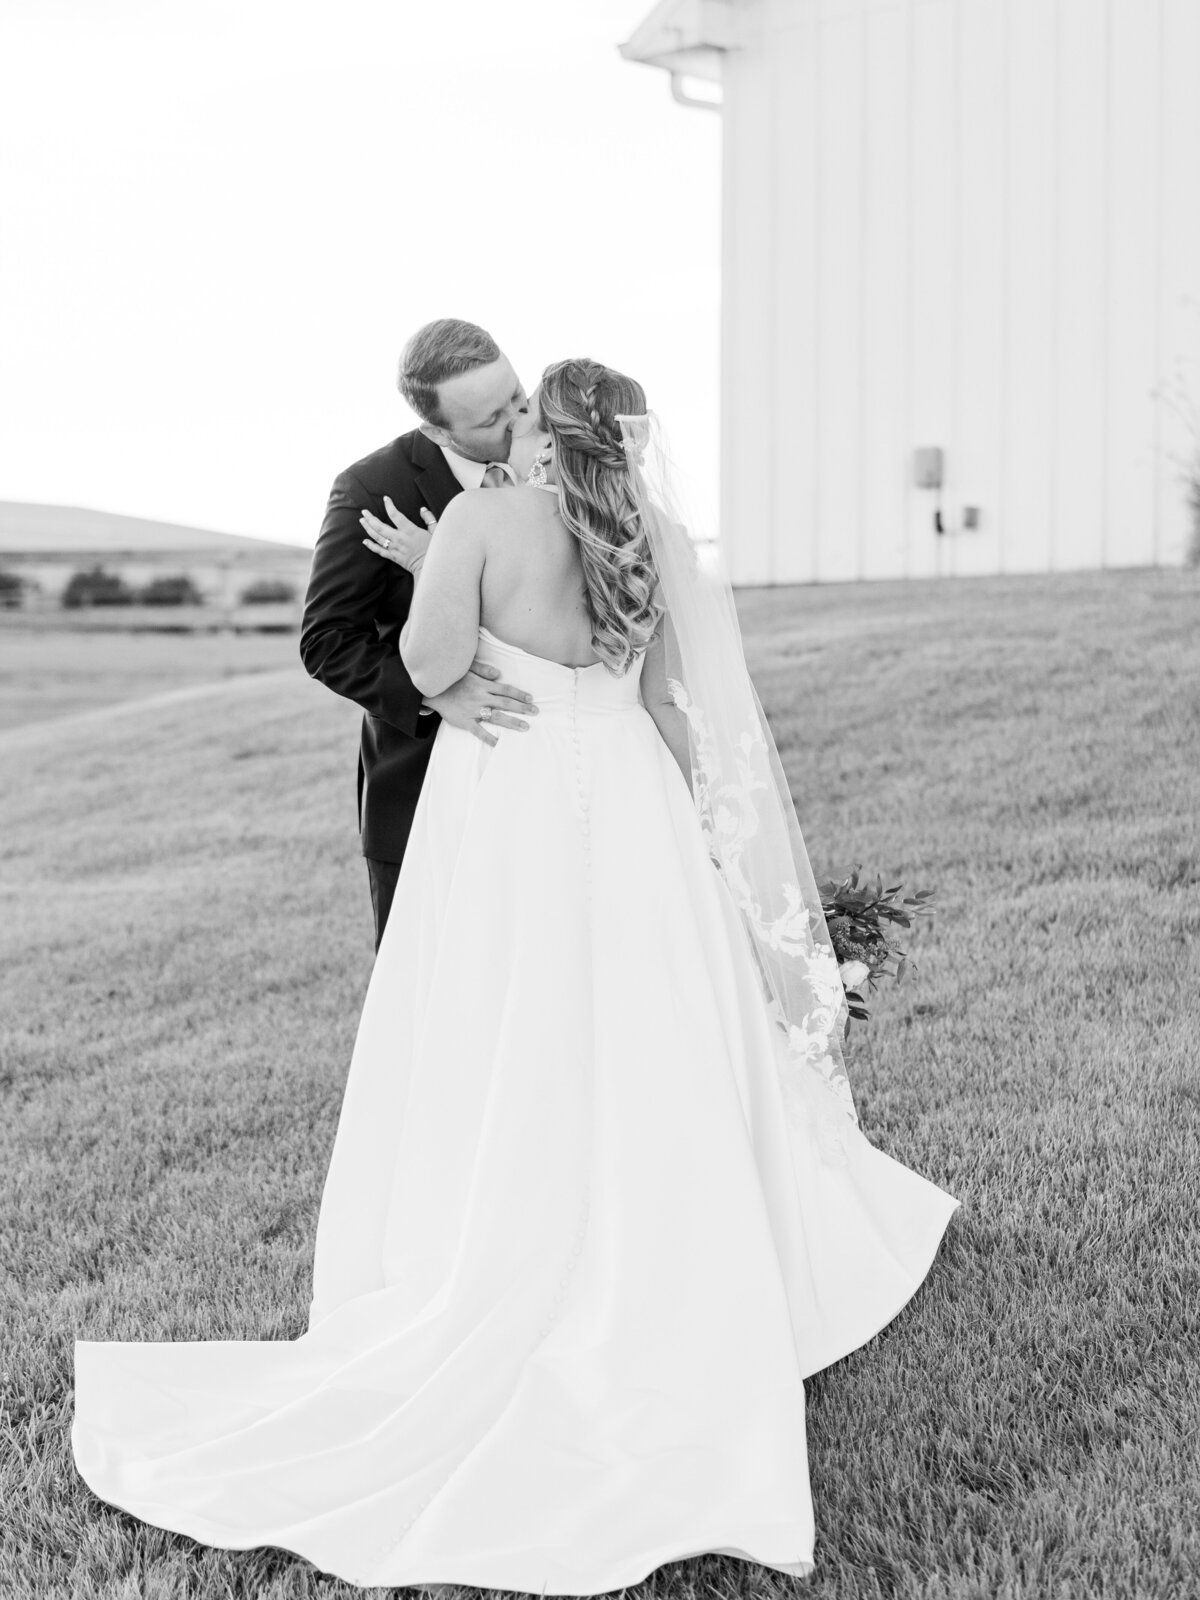 the-farmhouse-wedding-houston-texas-wedding-photographer-mackenzie-reiter-photography-90